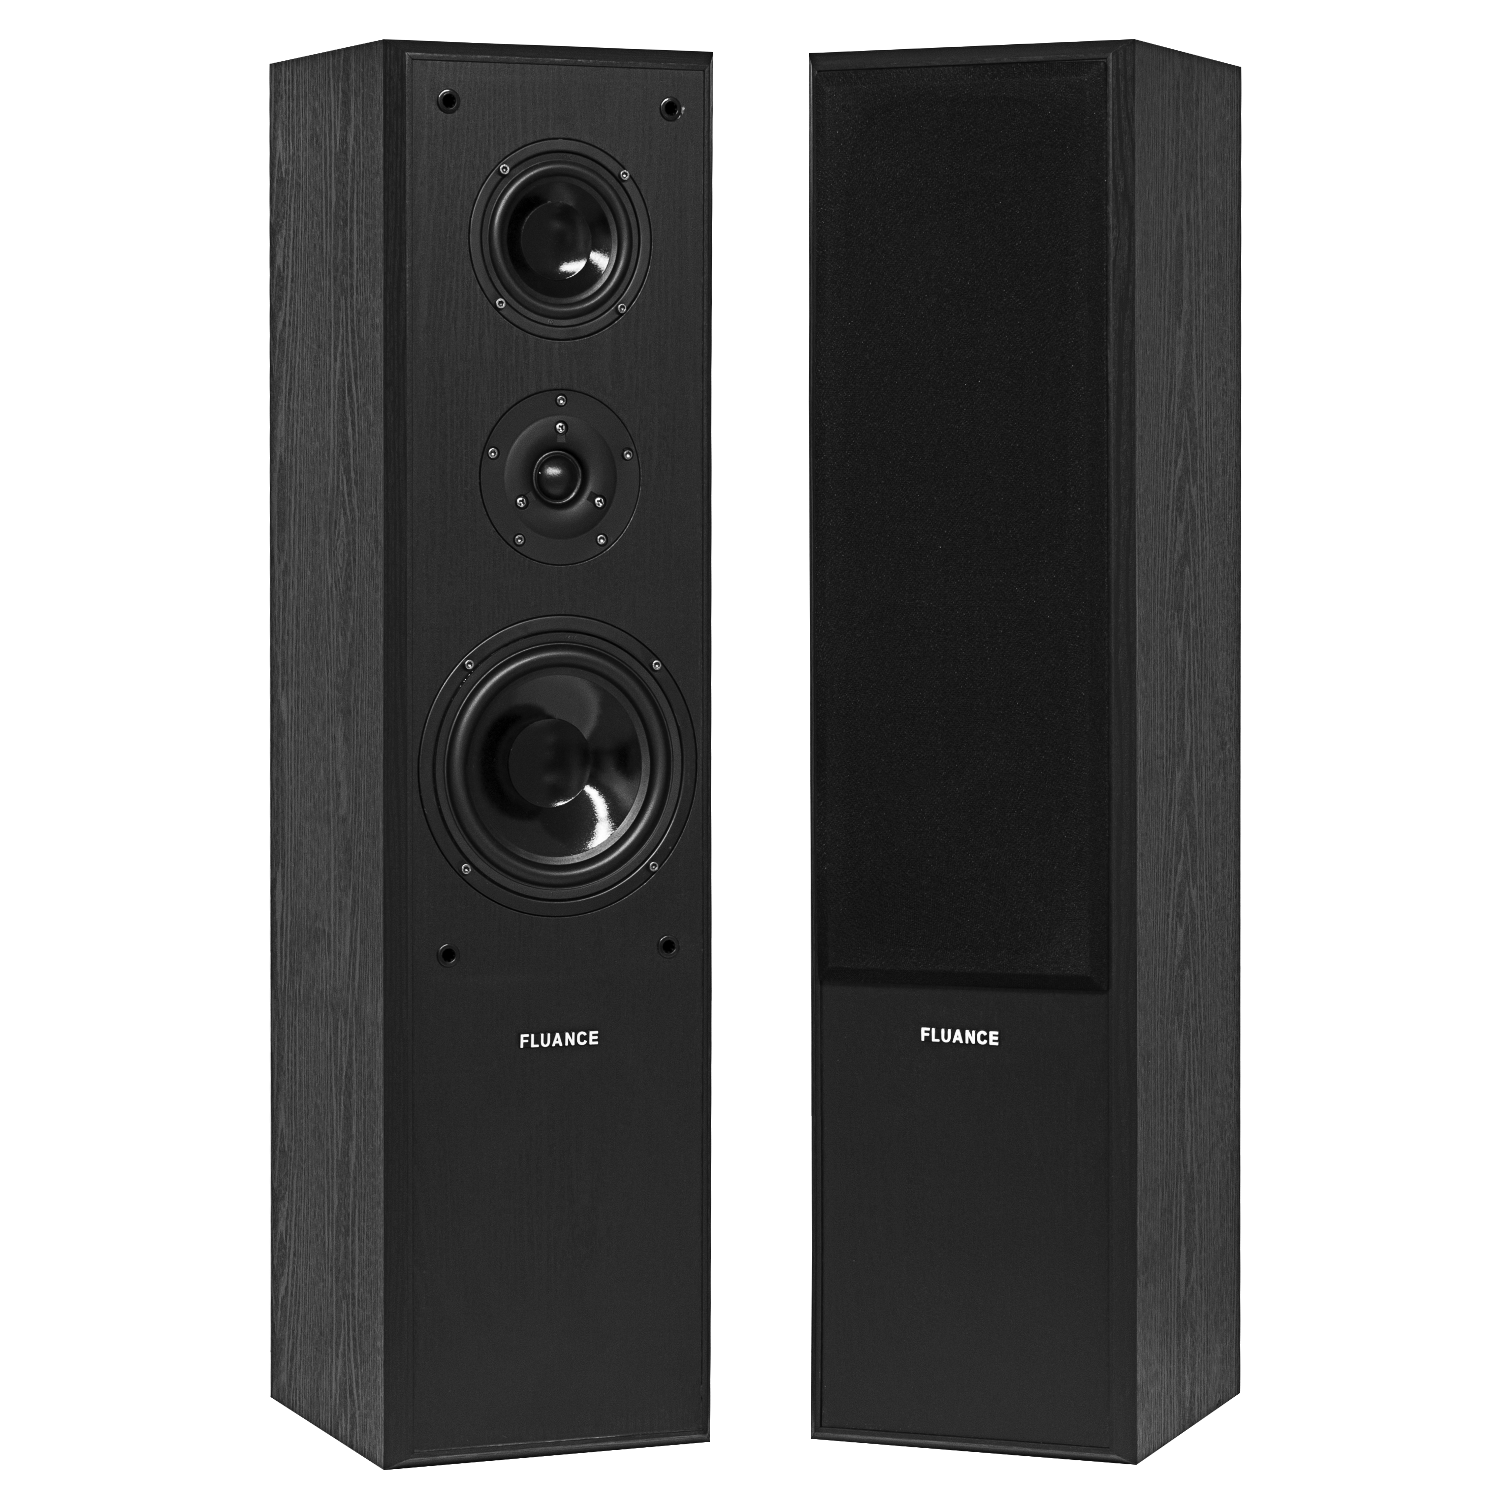 Fluance AVFR Black Ash Floorstanding Speakers